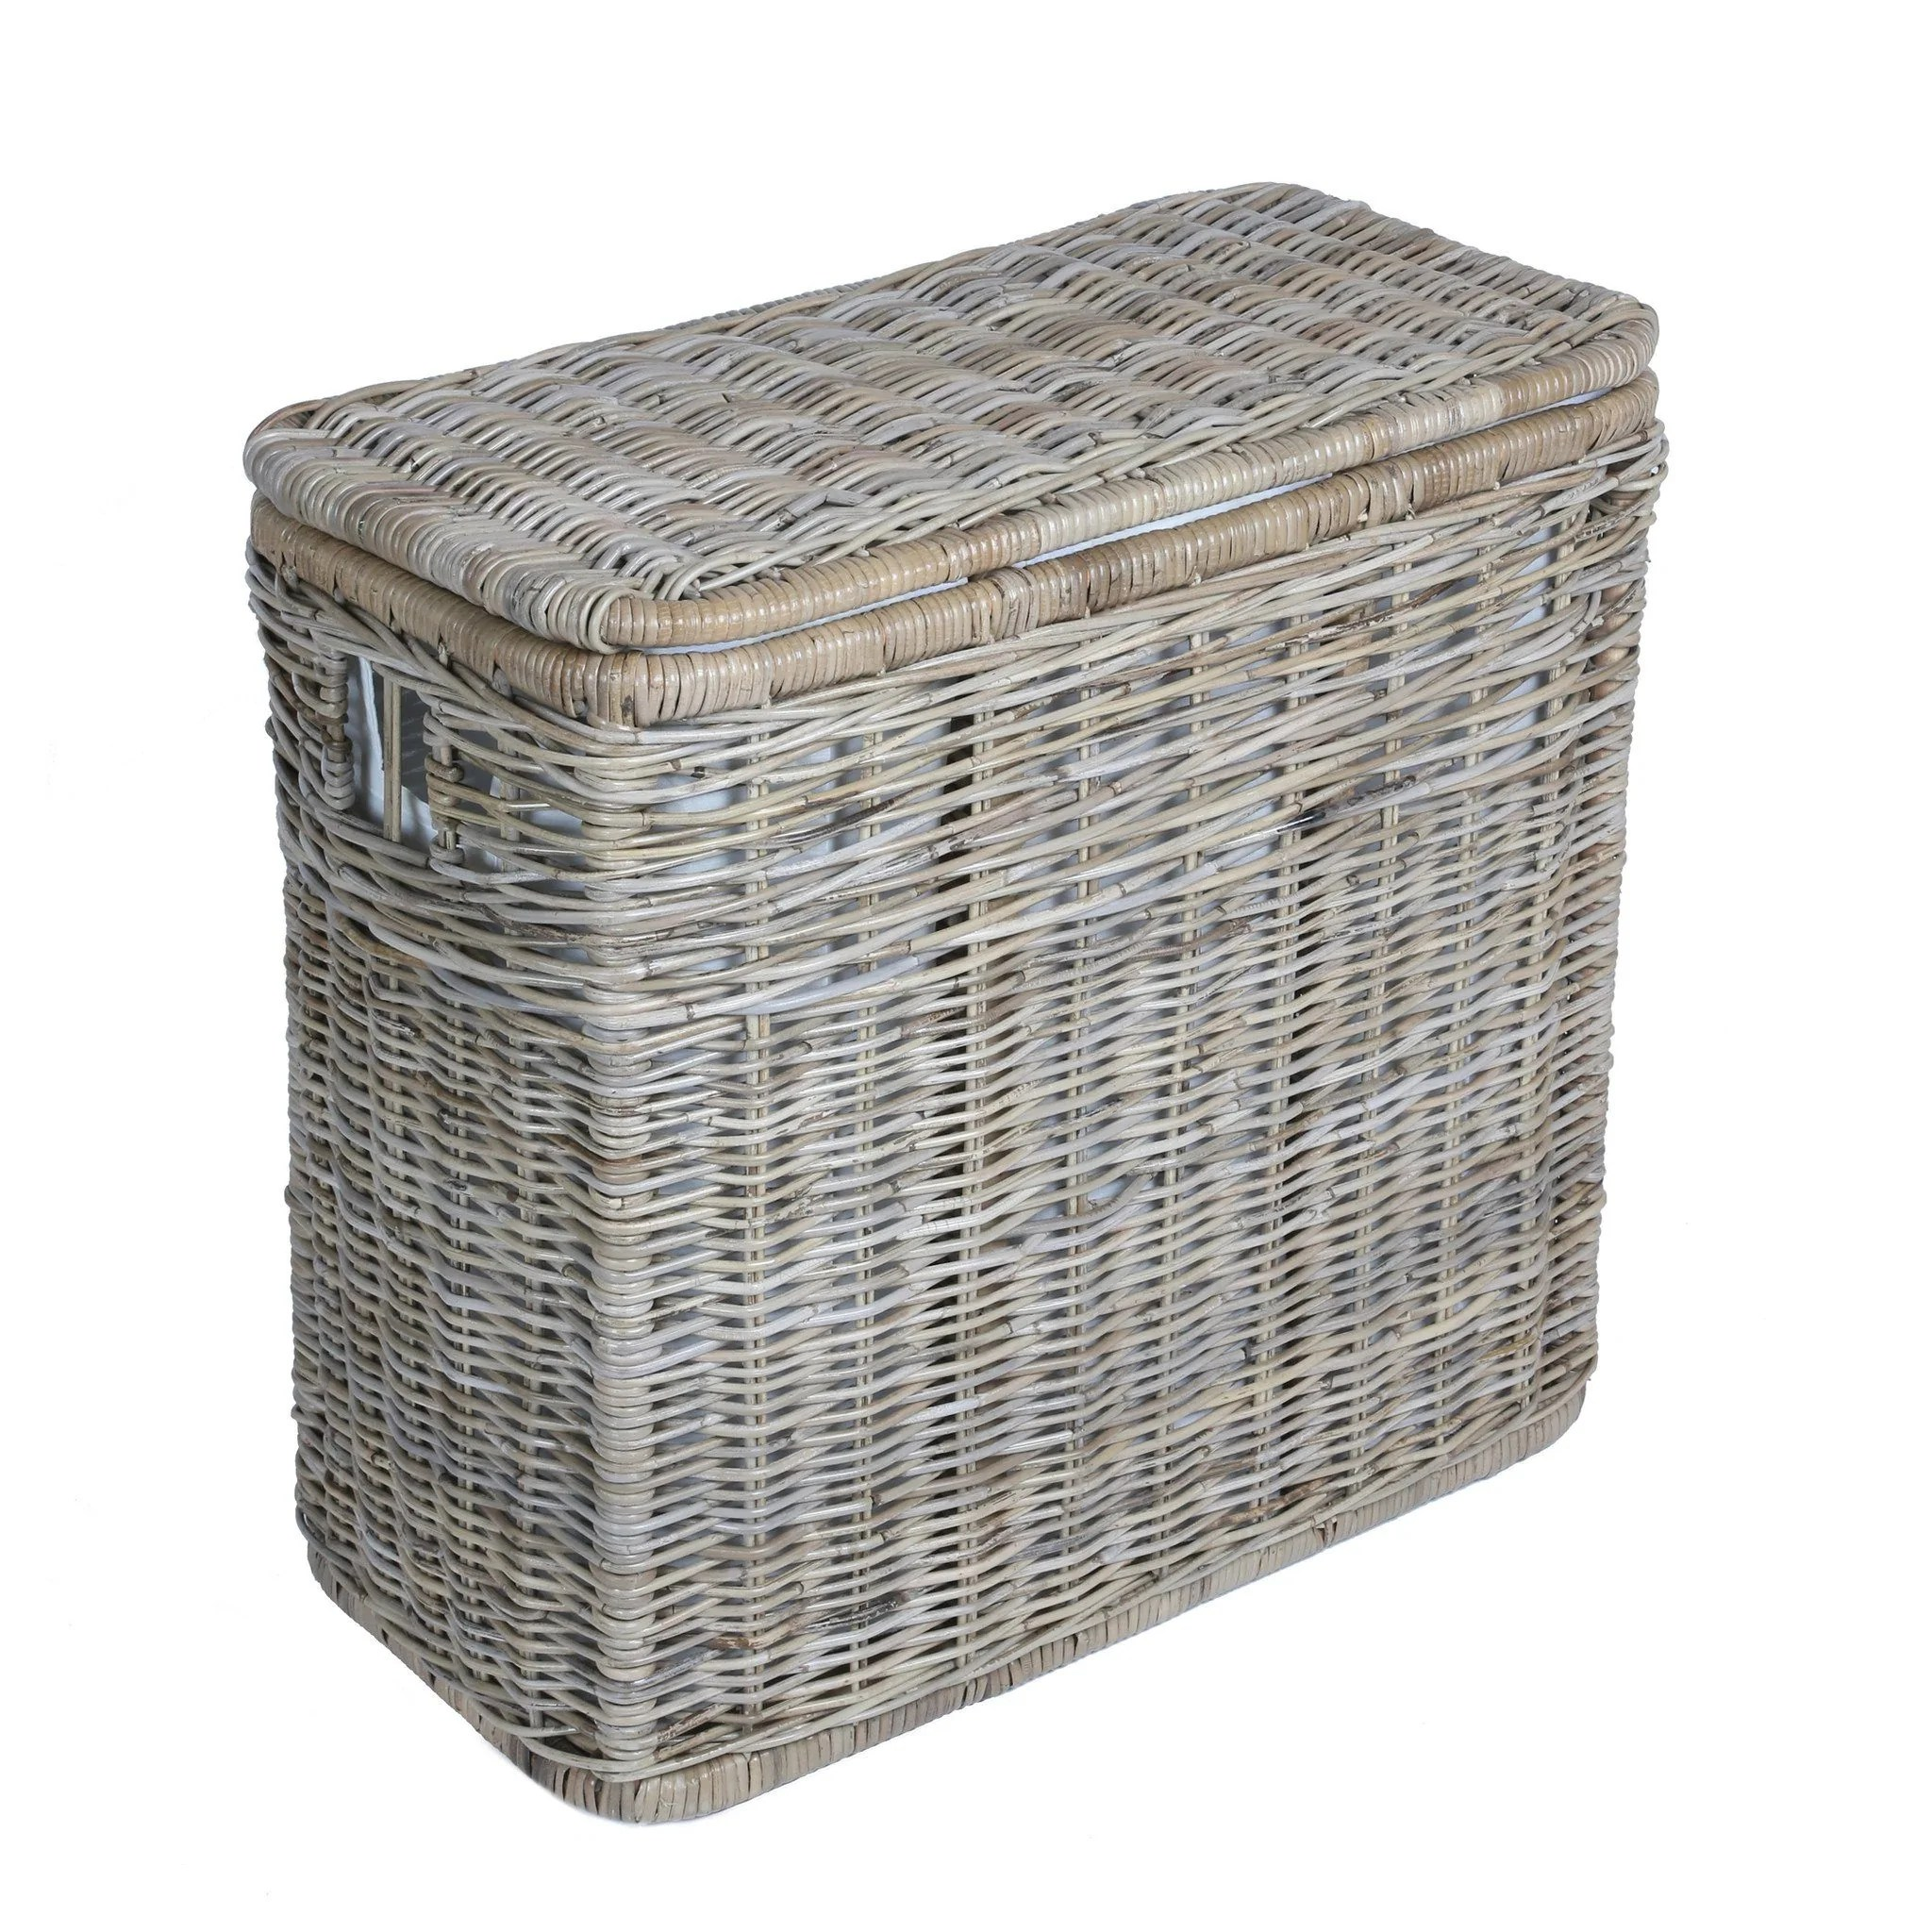 Laundry Basket Three Compartments 3 Compartment Kubu Wicker Laundry Hamper The Basket Lady